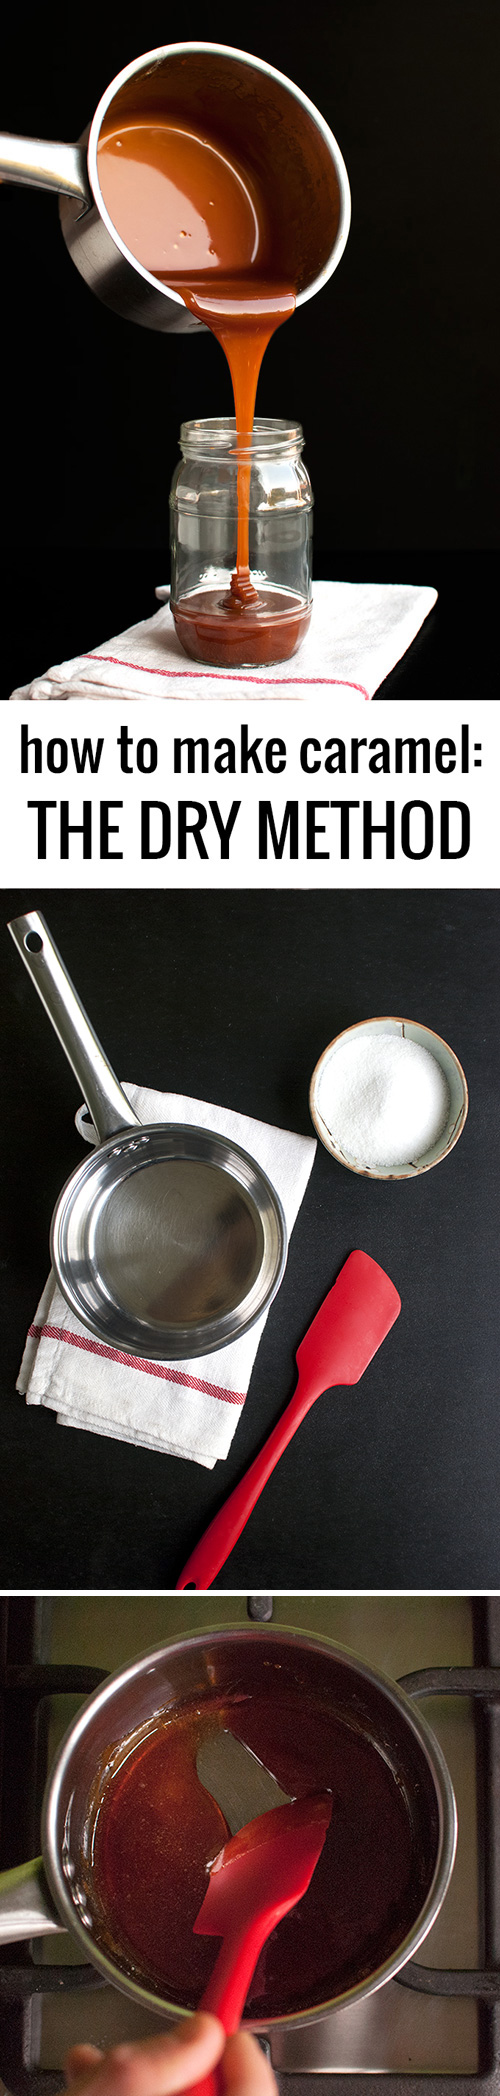 How to Make Caramel at Home: the Dry Method - Step-by-Step | thetoughcookie.com